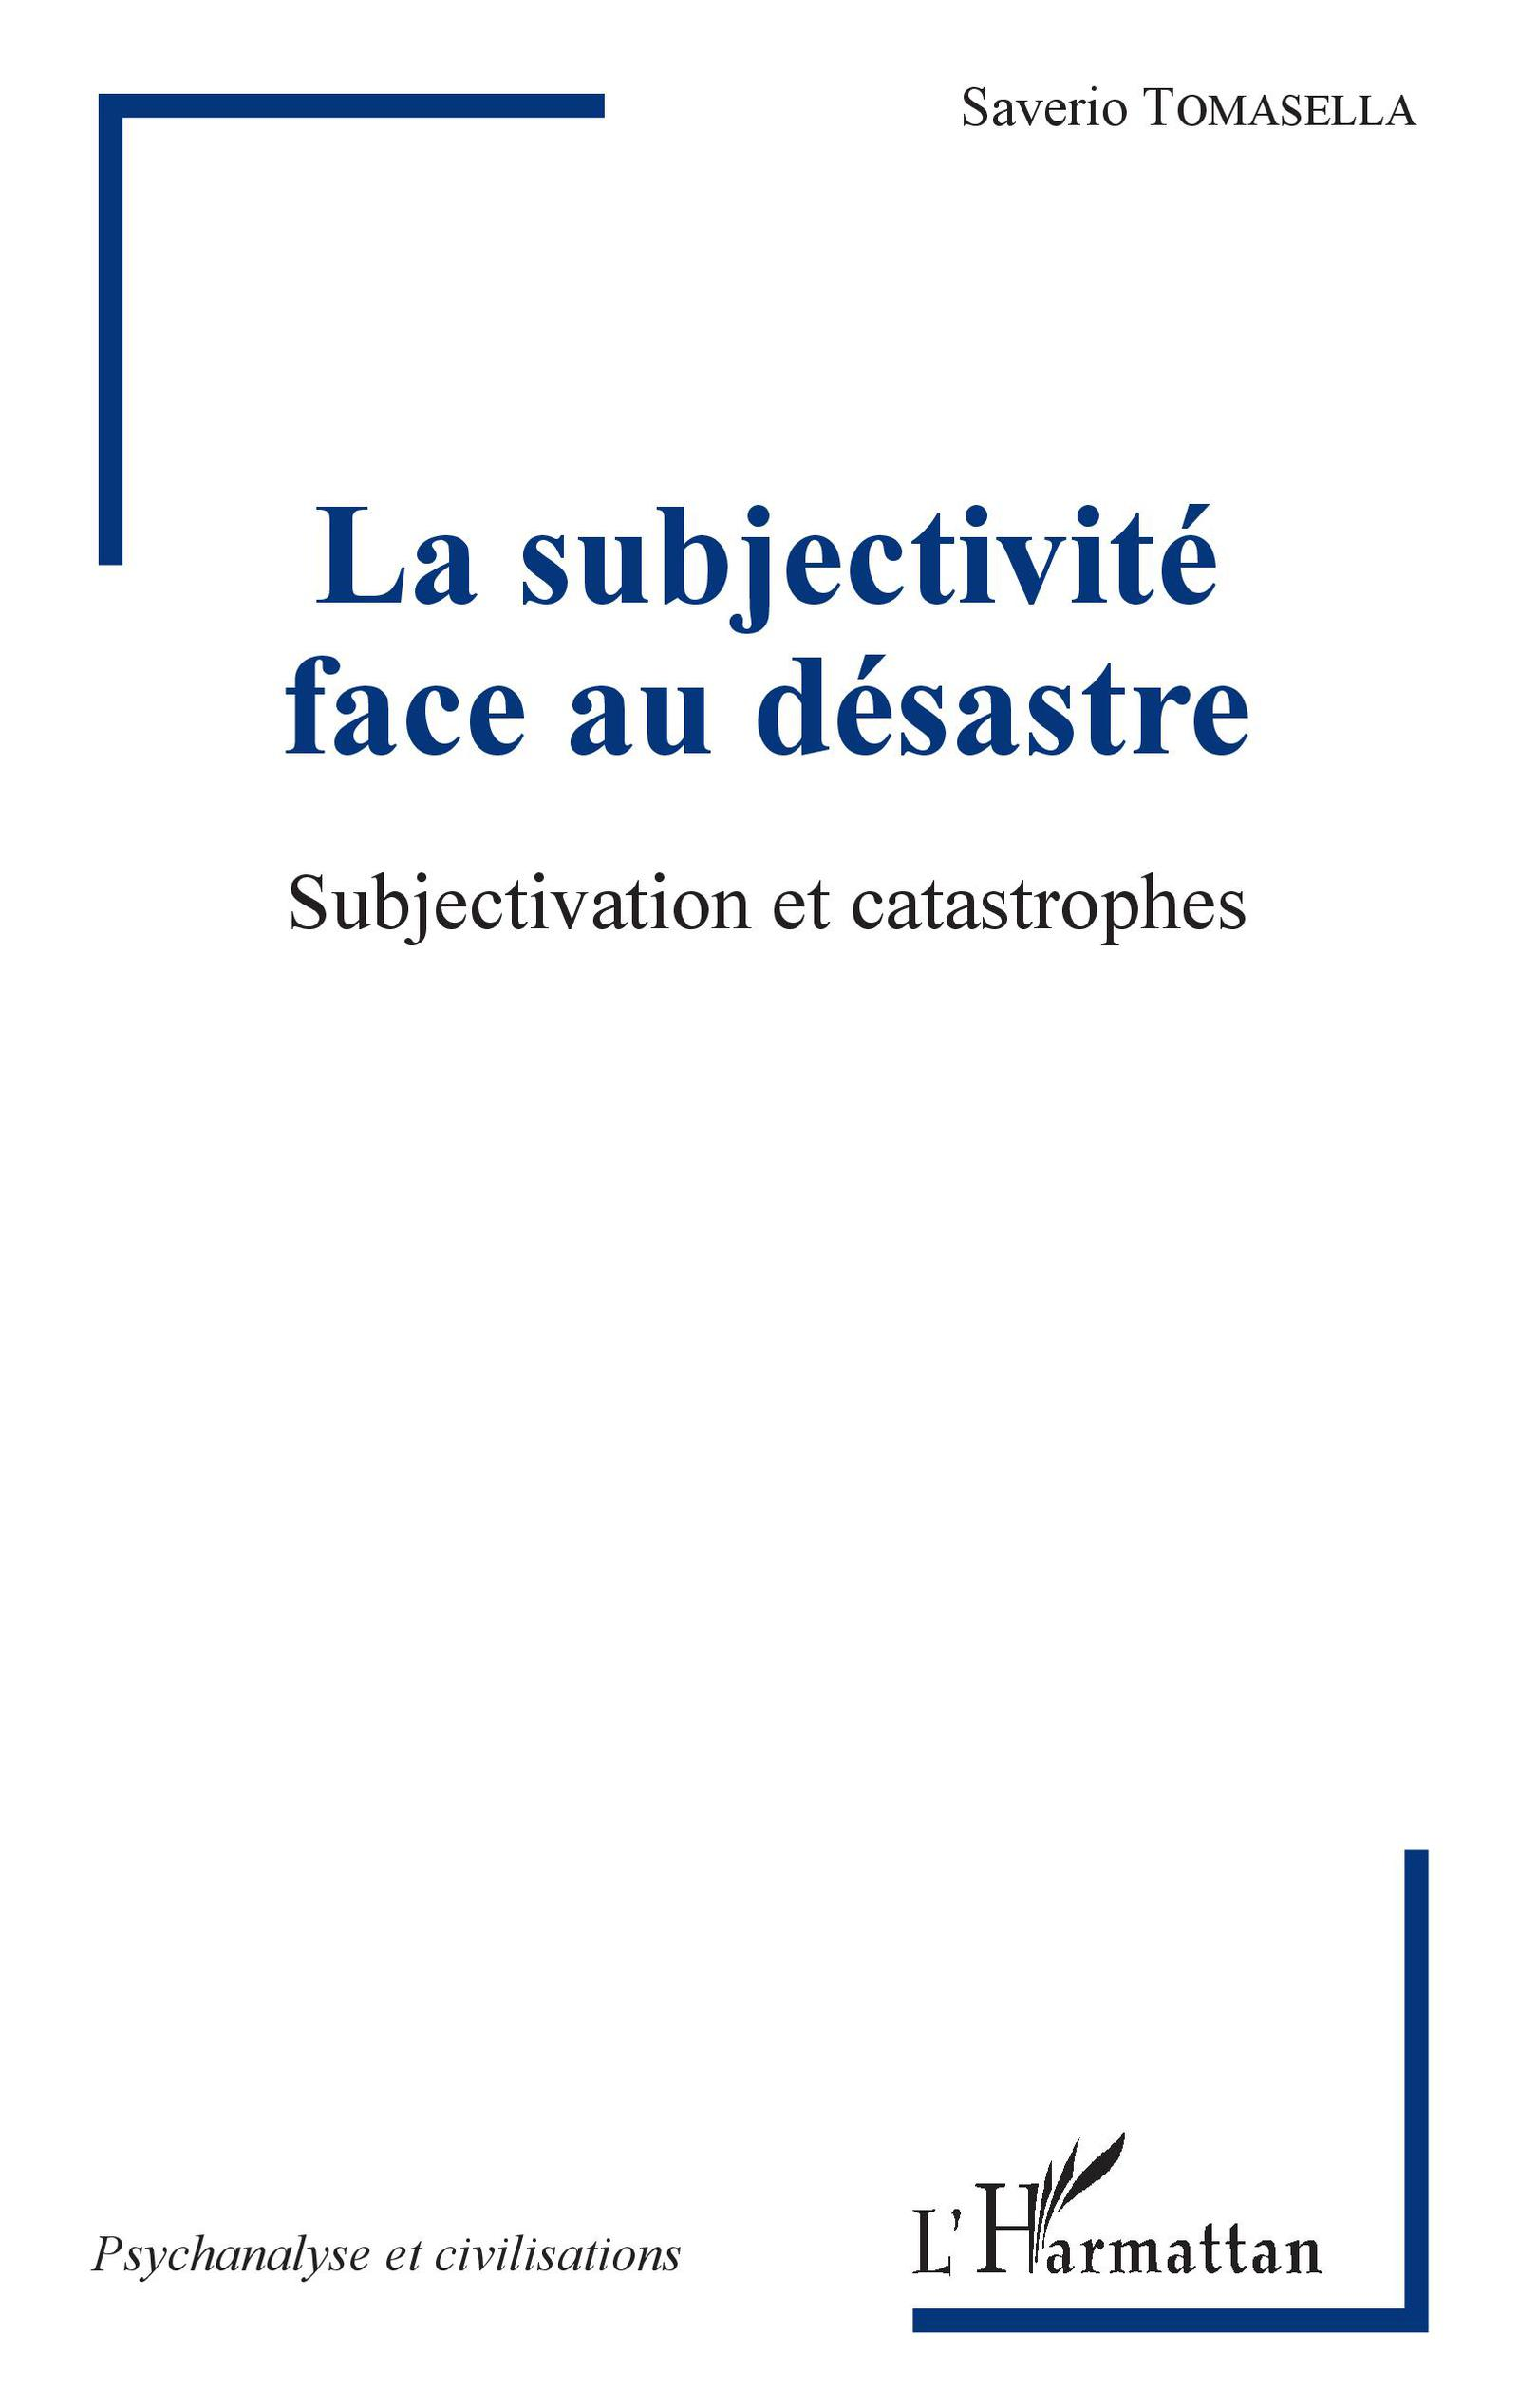 La subjectivité face au désastre